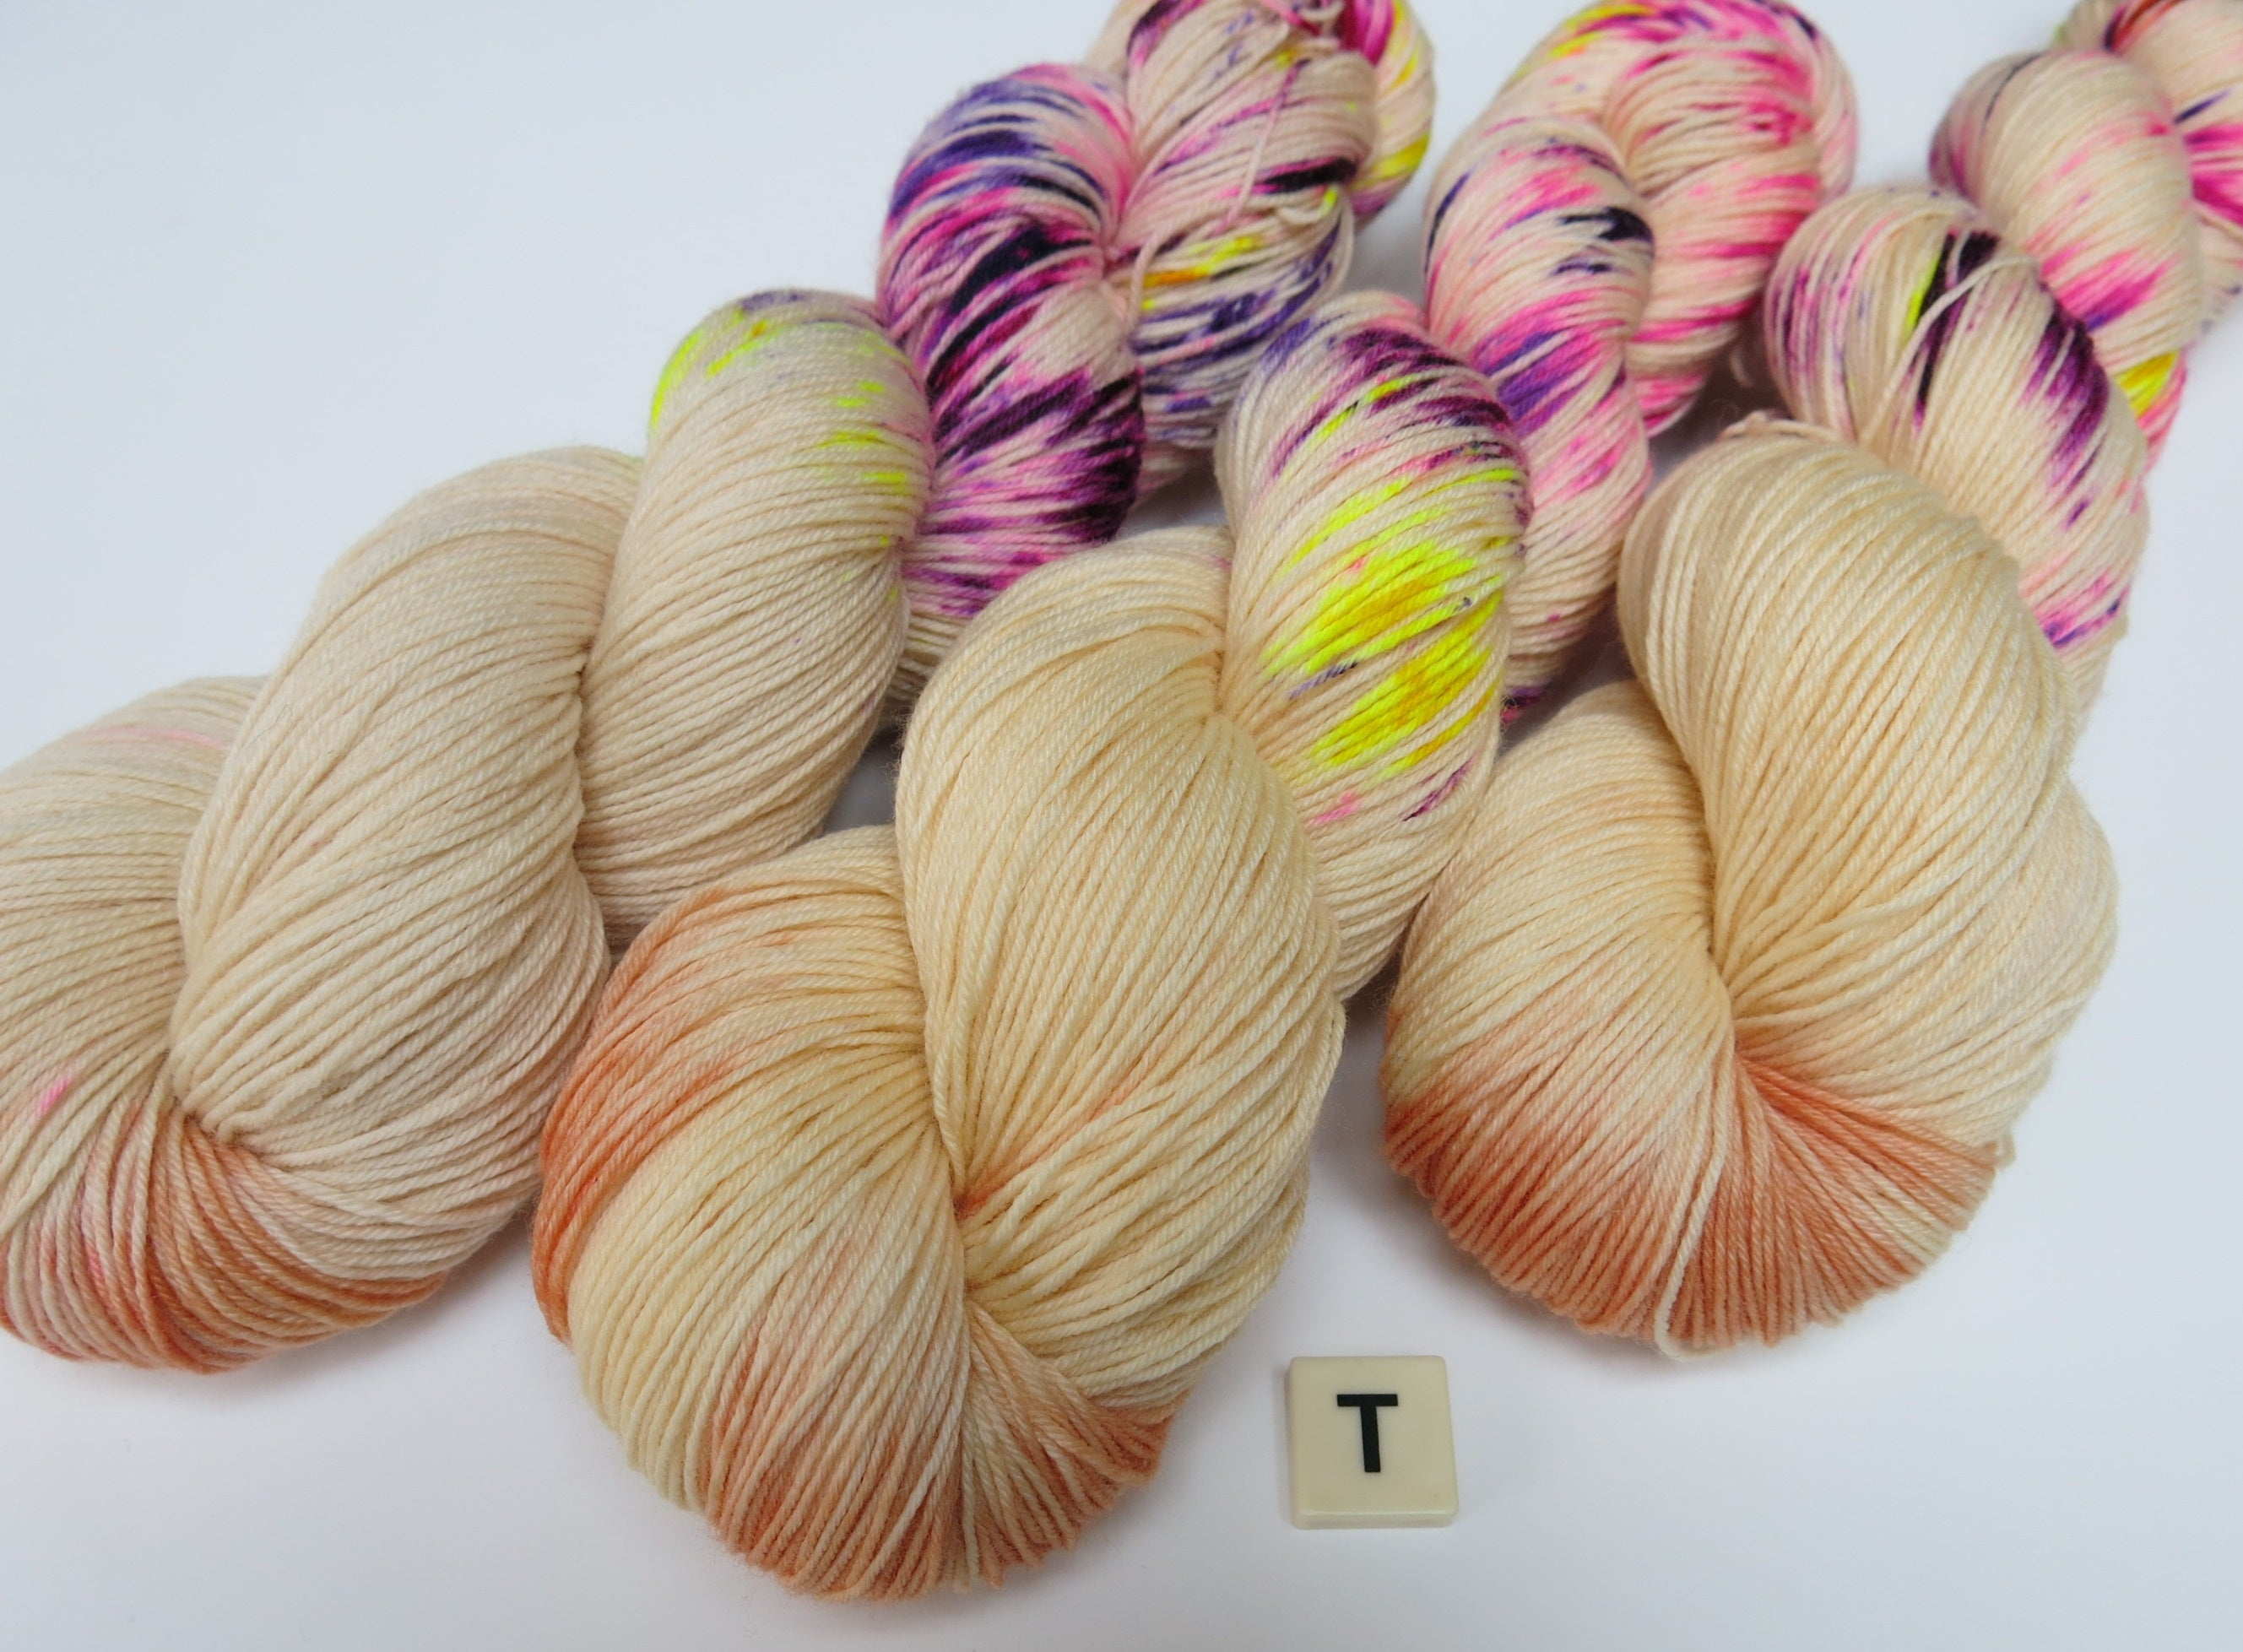 tits out collective cahrity fund raising yarn skeins